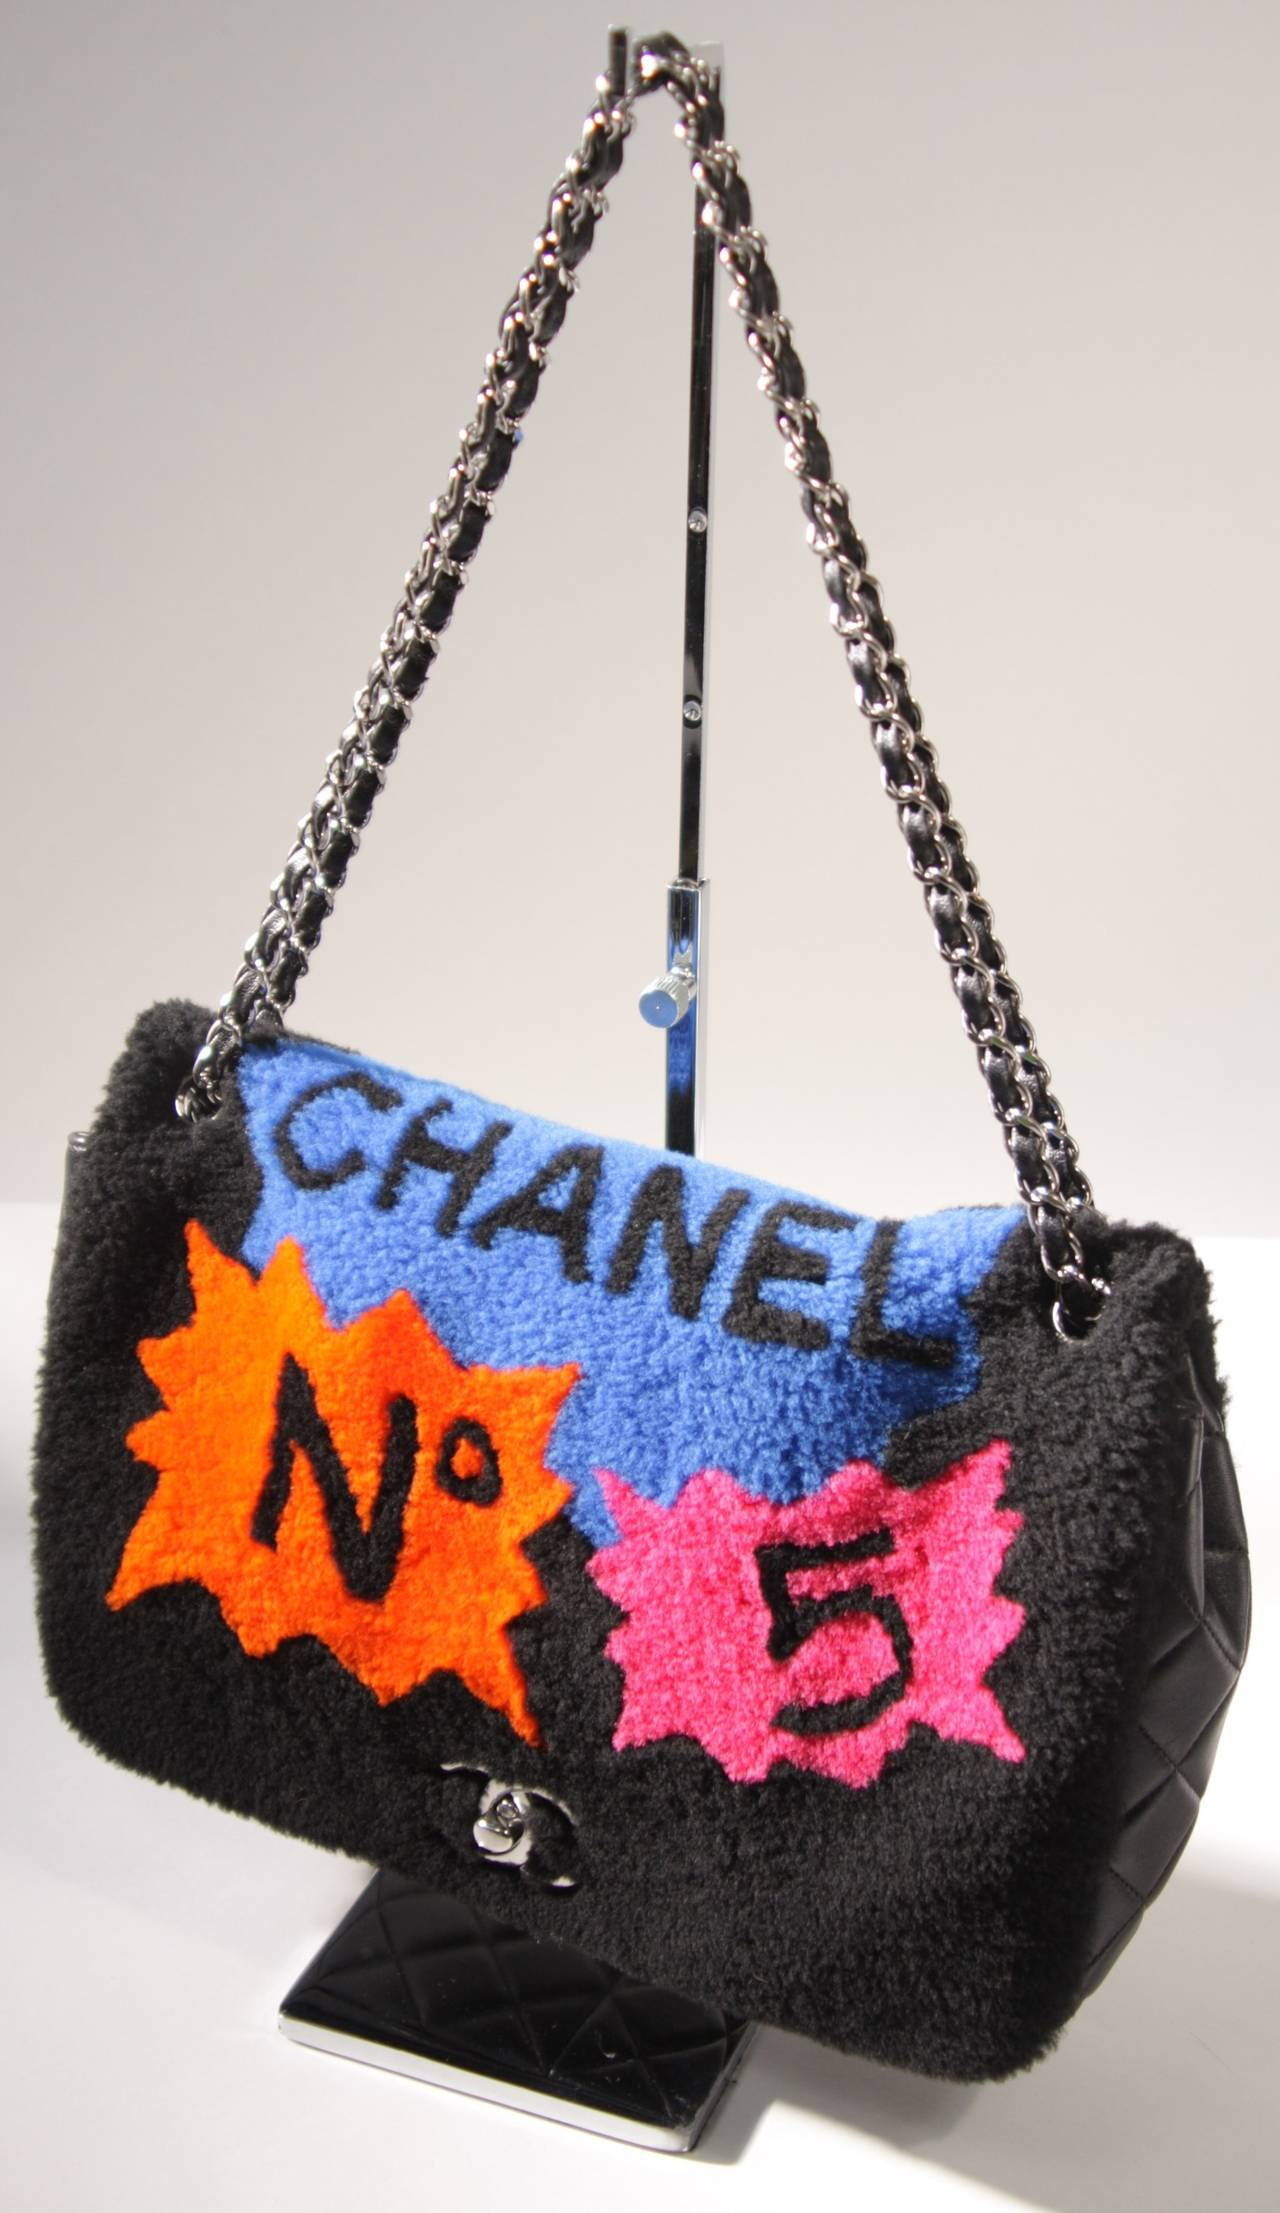 Chanel Shearling Art Pop Large Purse With Quilted Lambskin